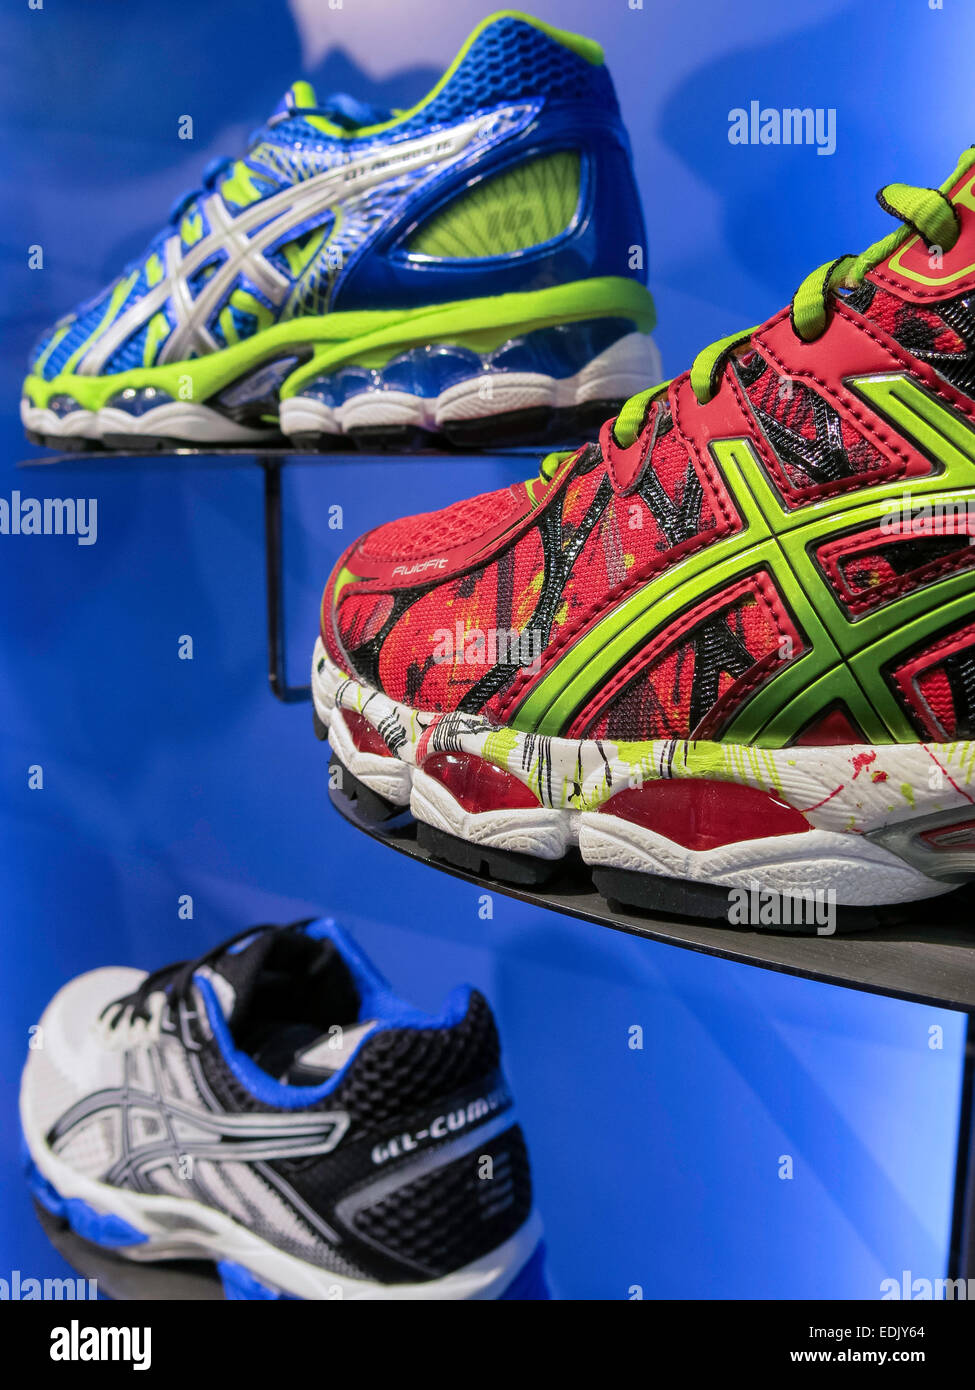 Athletic footwear stores. Online shoes for women